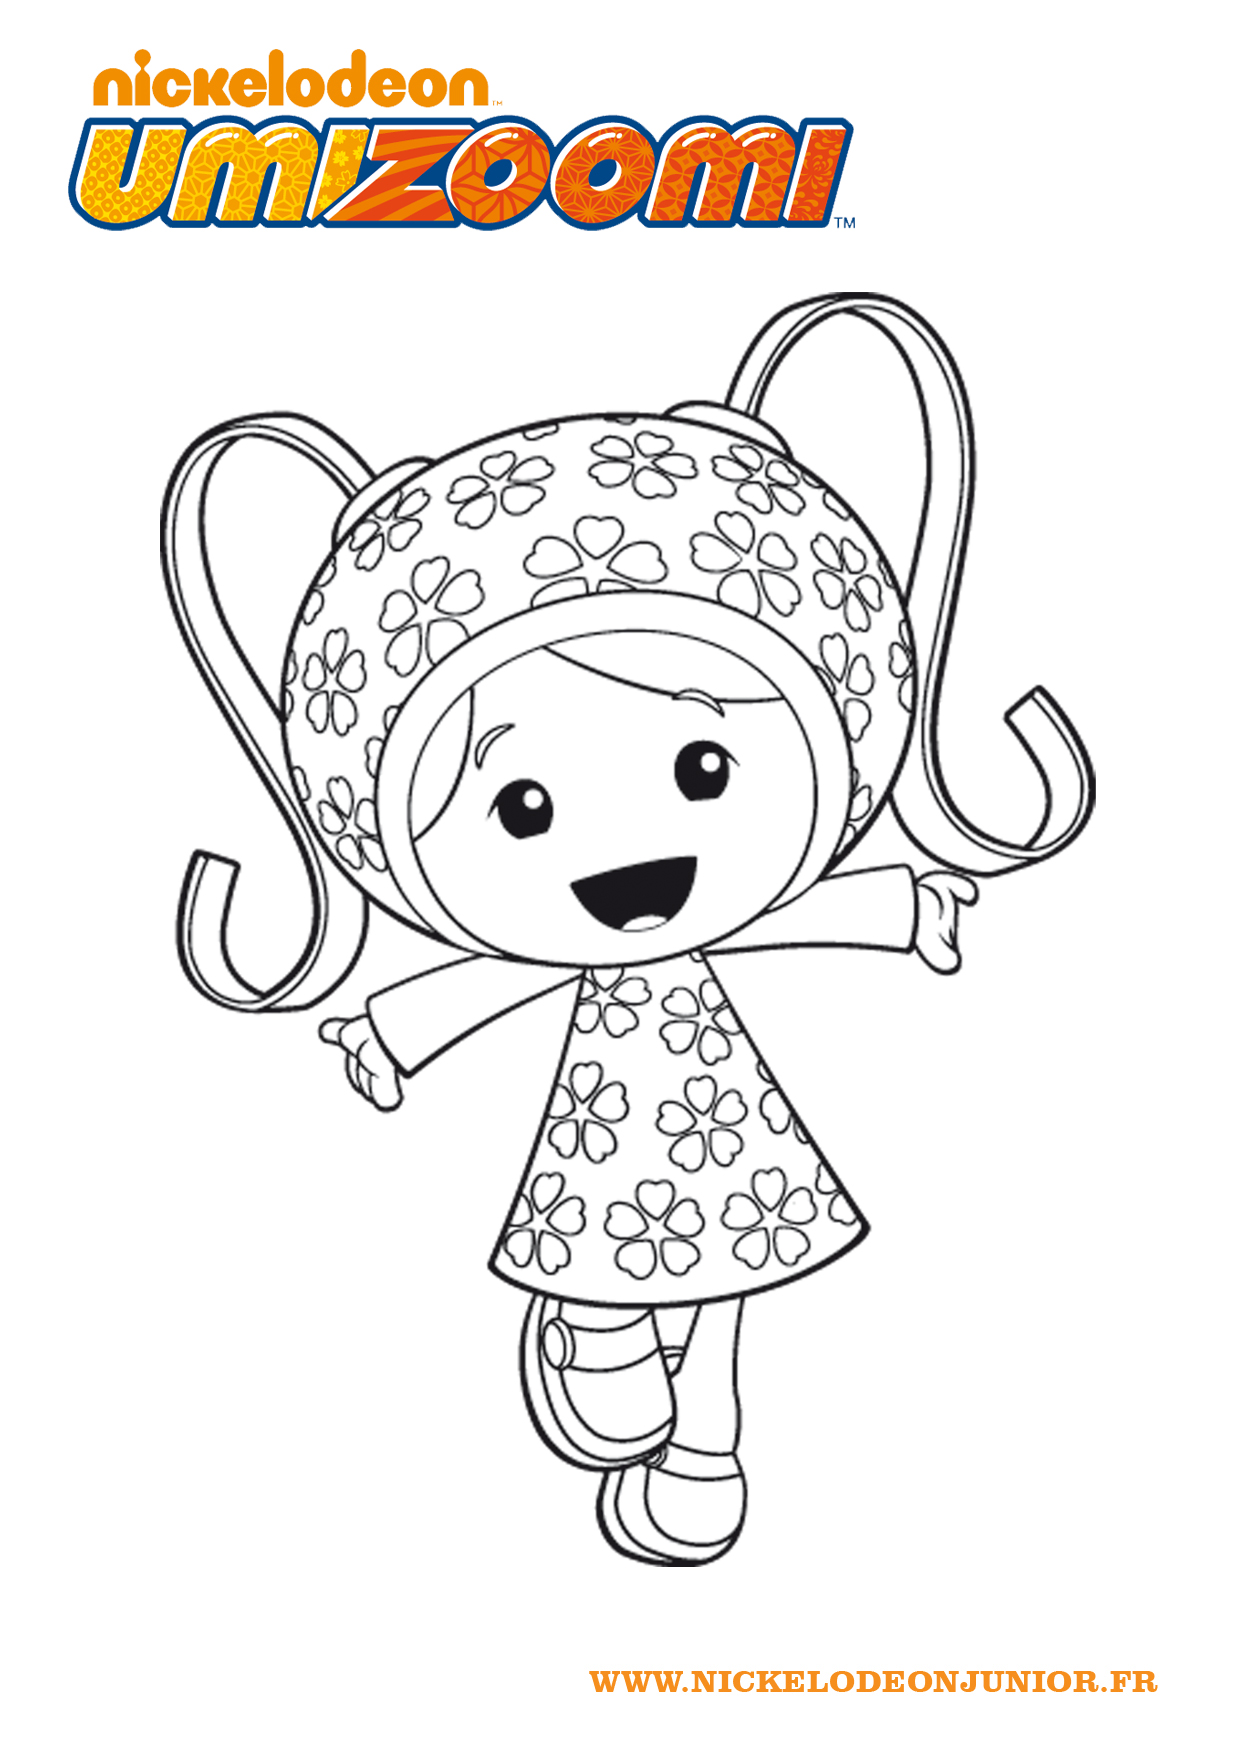 Simple Umizoomi coloring page